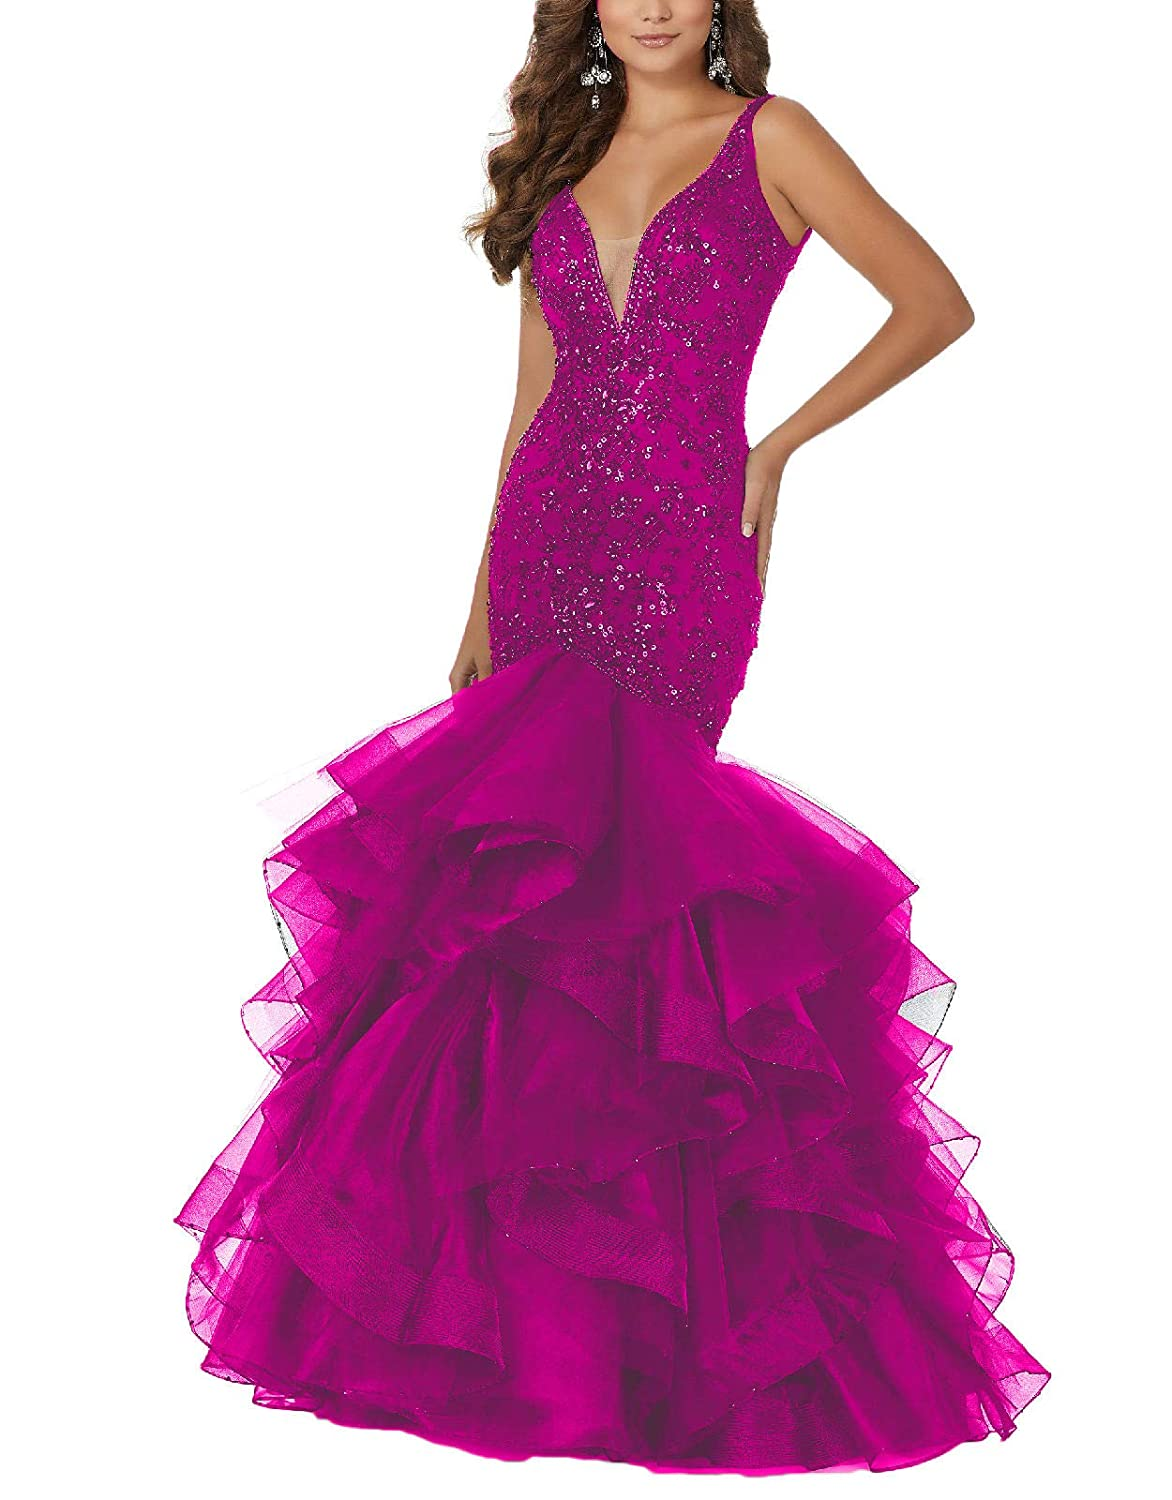 8746a7c0851a pink Yisha Bello Womens Sequins VNeck Mermaid Prom Gowns Long Tulle Beaded Evening  Formal Party Dress. RSTJSjcw Women's 3in1 TwoPiece ...